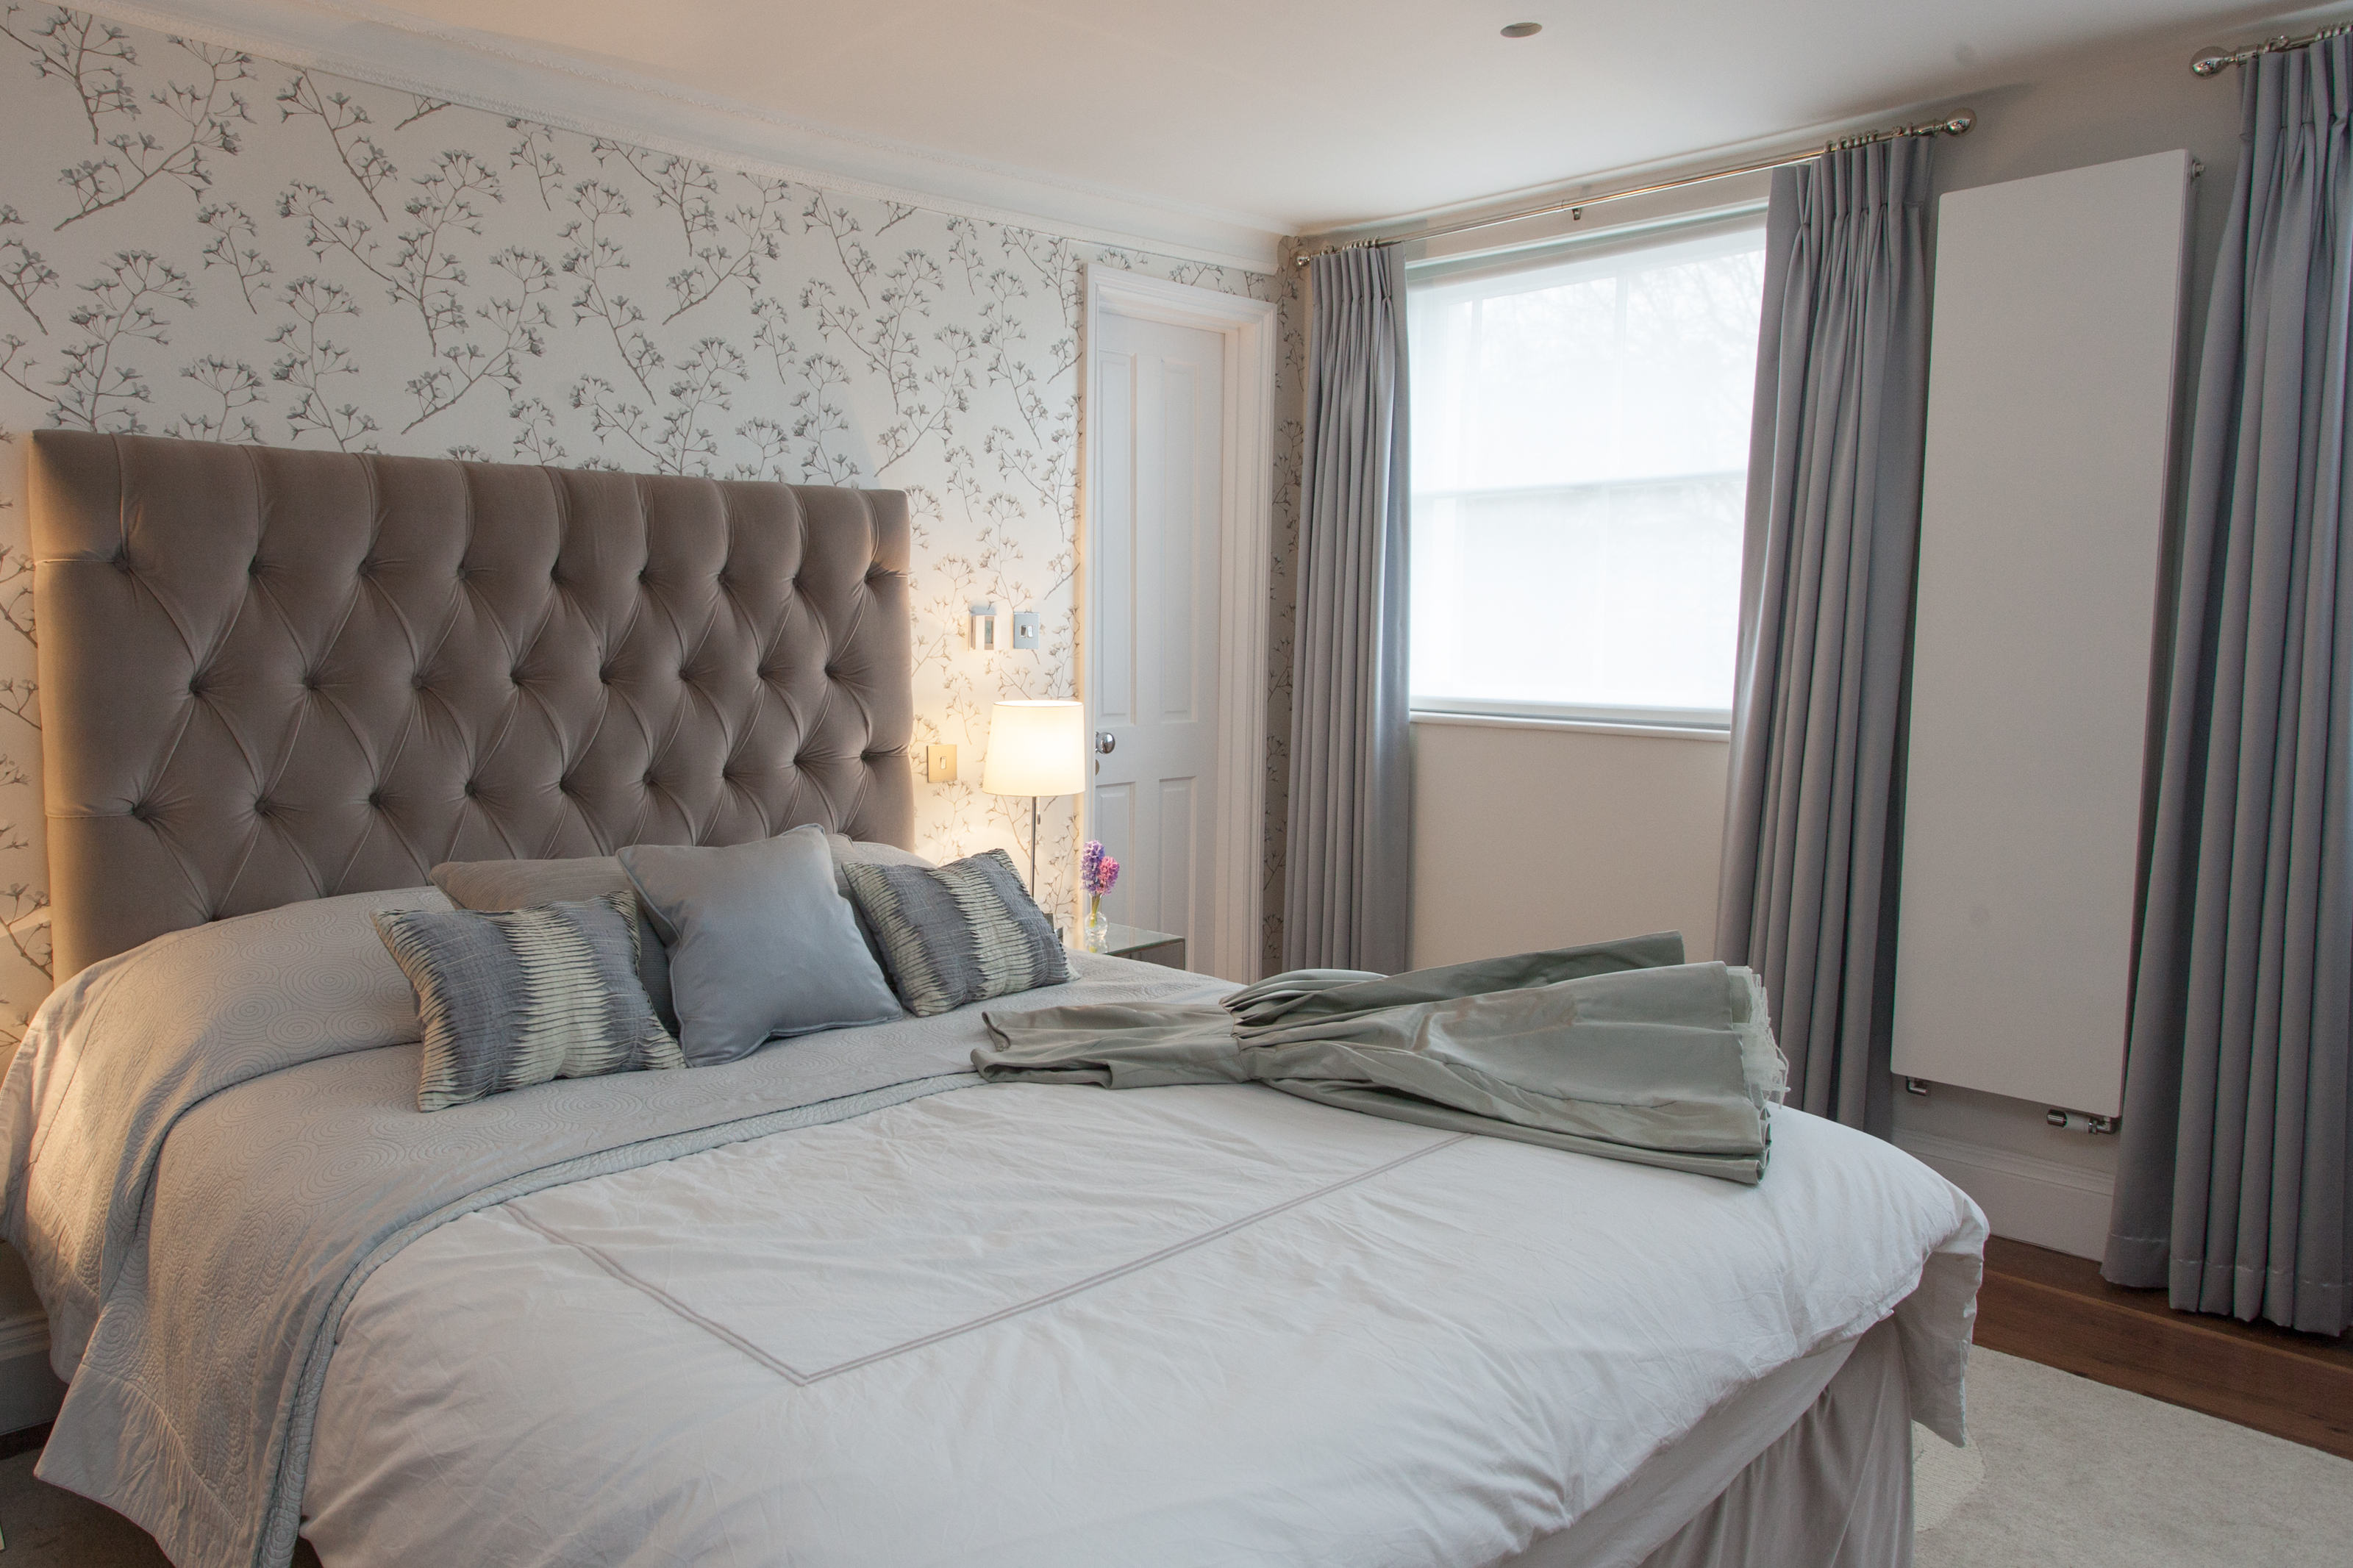 elegant master bedroom in muted colour palette with bespoke headboard and patterned wallpaper